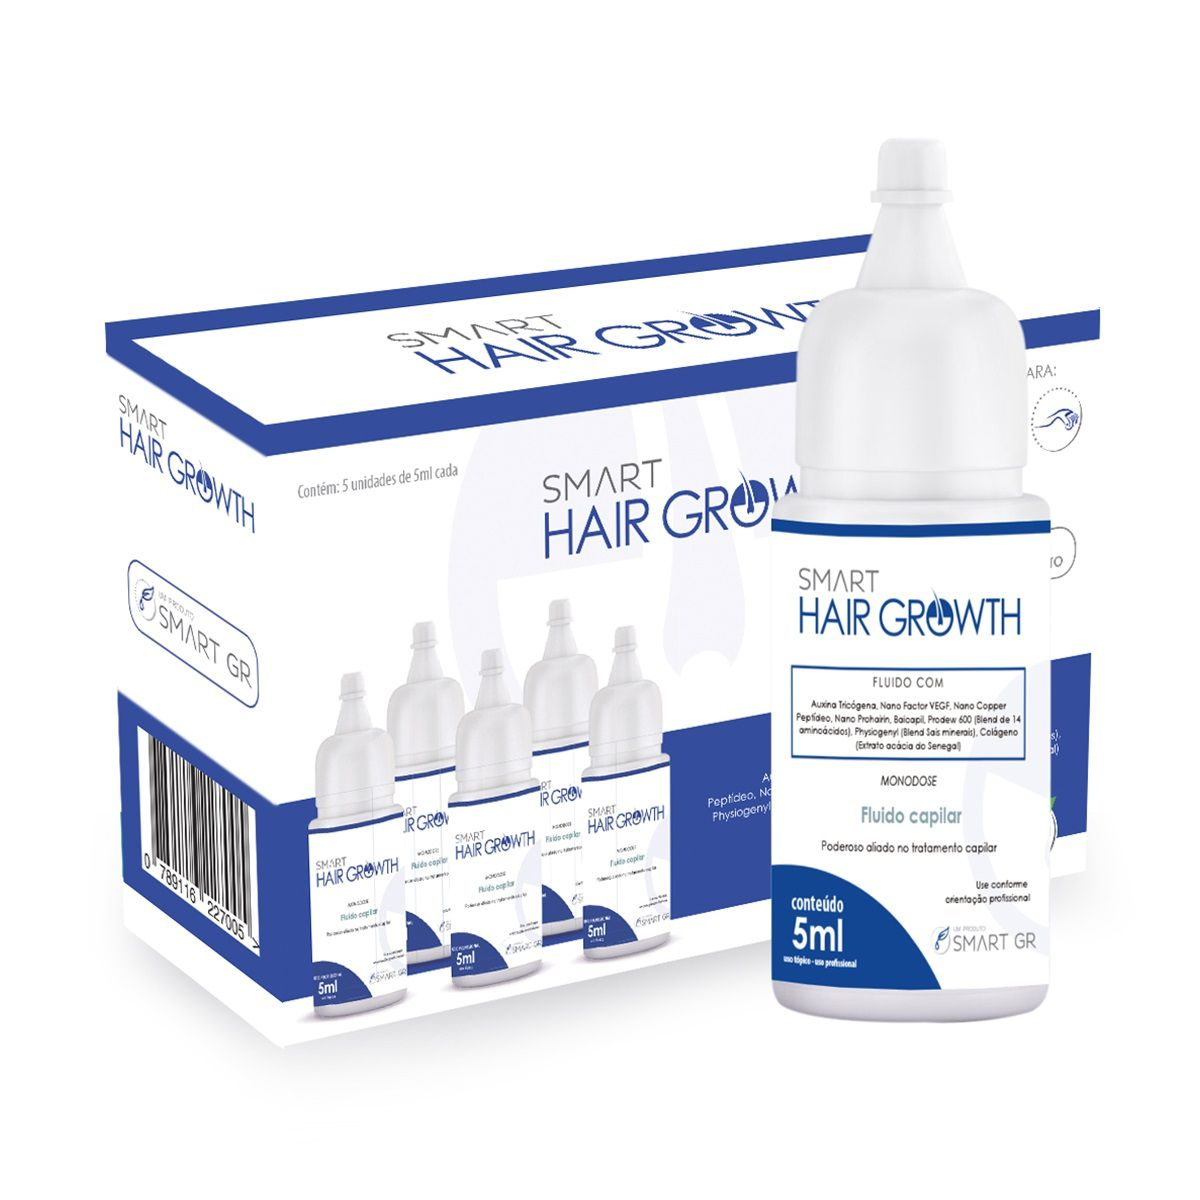 SMART HAIR GROWTH - TERAPIA CAPILAR - 5 MONODOSES DE 5 ML